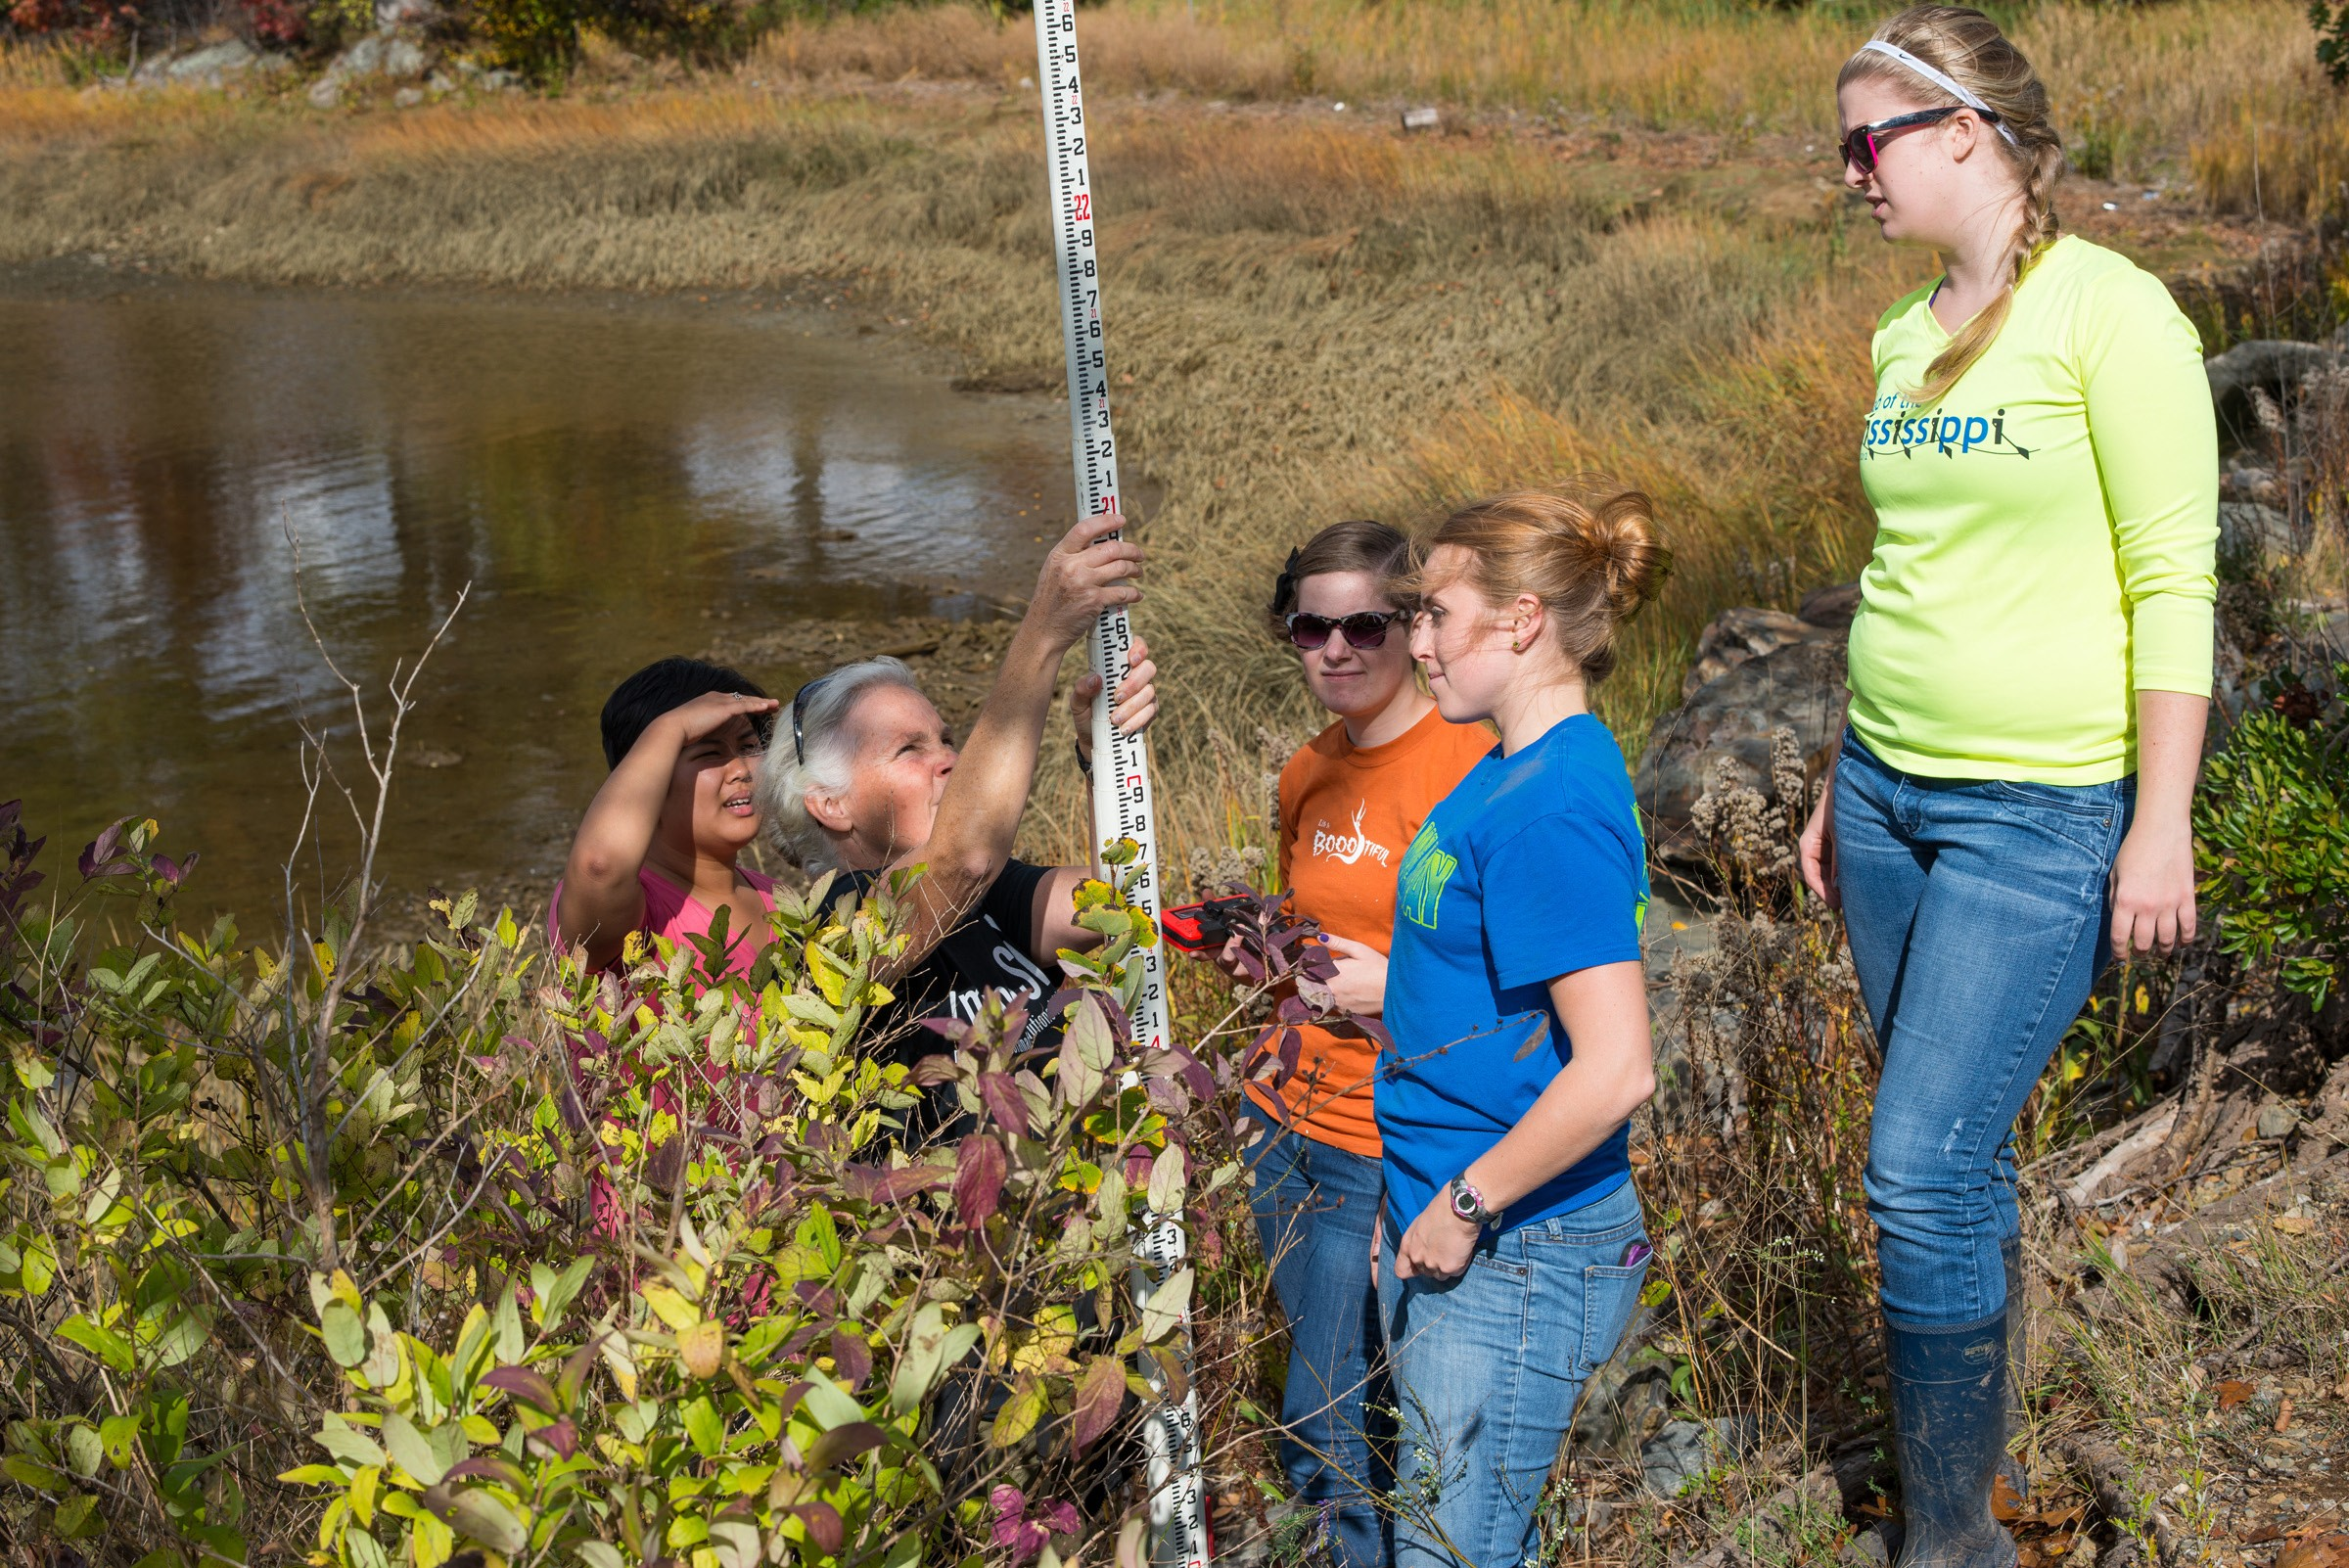 University of New England Environmental Studies students work with UNE Associate Professor Pam Morgan to survey elevations along the Saco River in order to map sea levels.